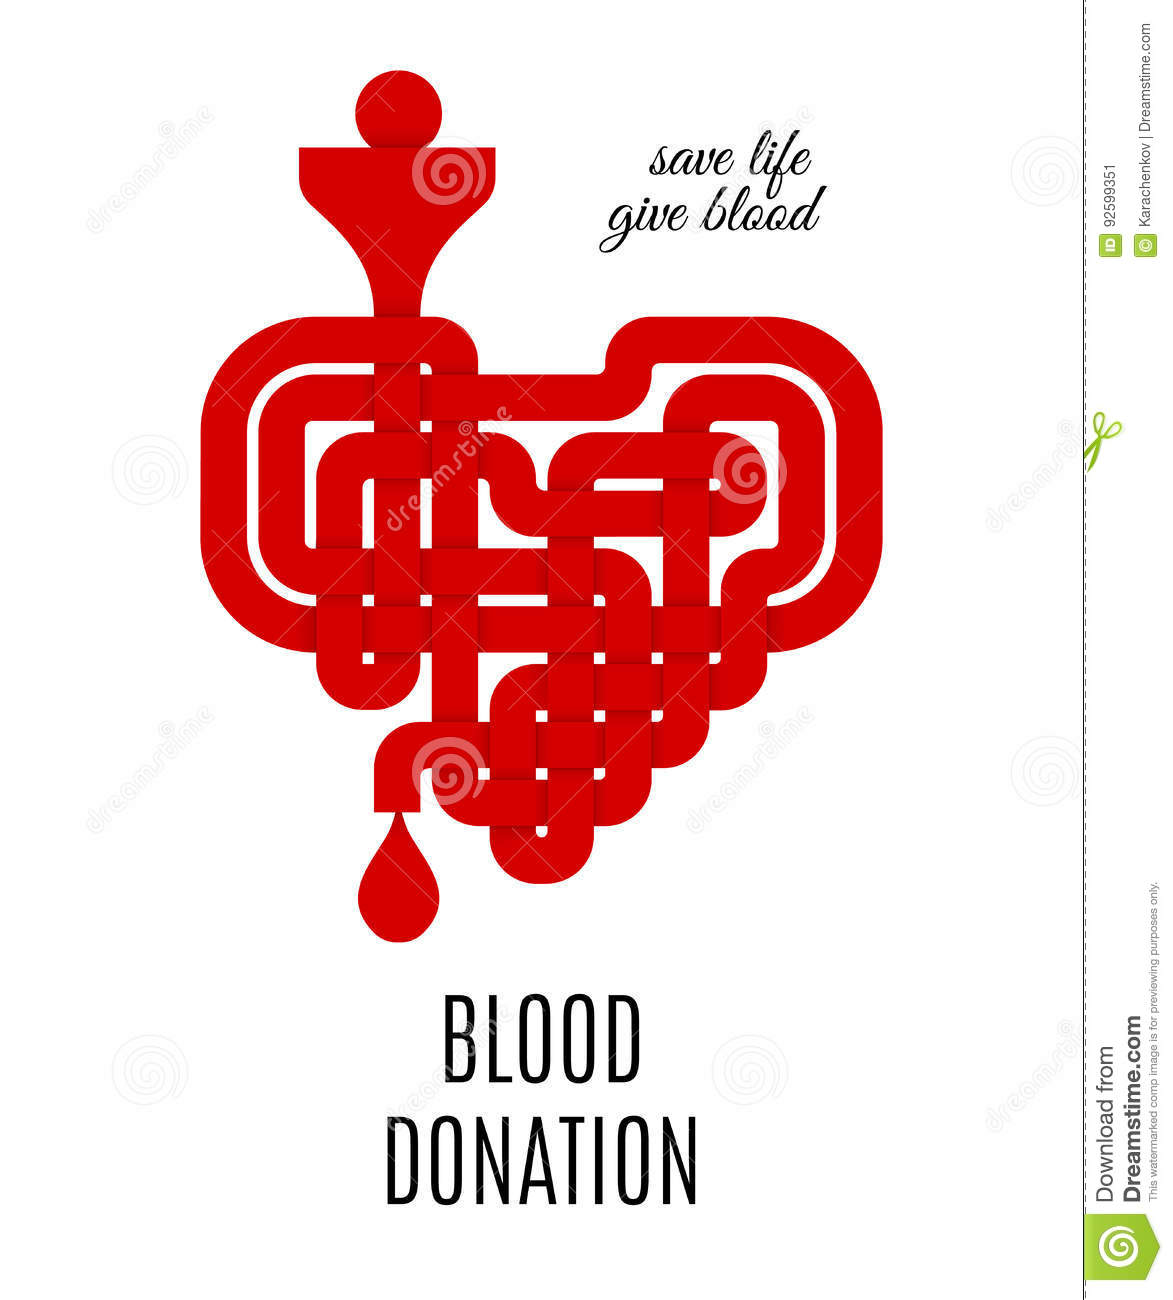 Blood donation concept  with red celtic knotted heart. Vector illustration